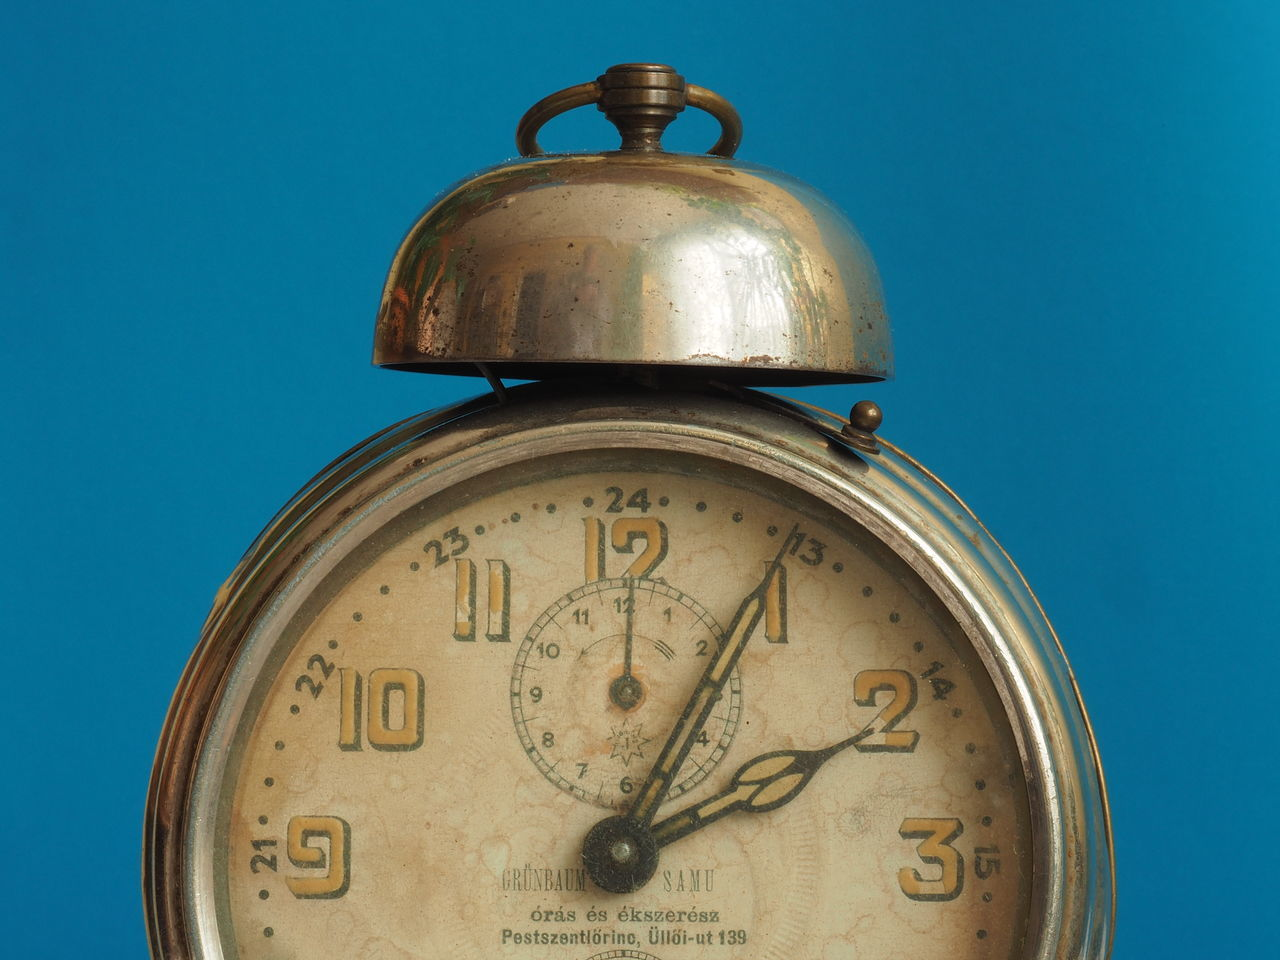 Alarm Alarm Clock Alarm Clocks Alarm Clocks Of My Grandmothers AlarmClock Antique Antique Clock Bell Bell Ring Bell Ringer Clock Clock Structure Close-up From Analog To Digital Herritage Herritage Of My Grandmothers Hour Hand Lieblingsteil Minute Hand My Previous Alarm Clocks Past And Future Past And Present The Time Has Expired The Time Has Passed Time